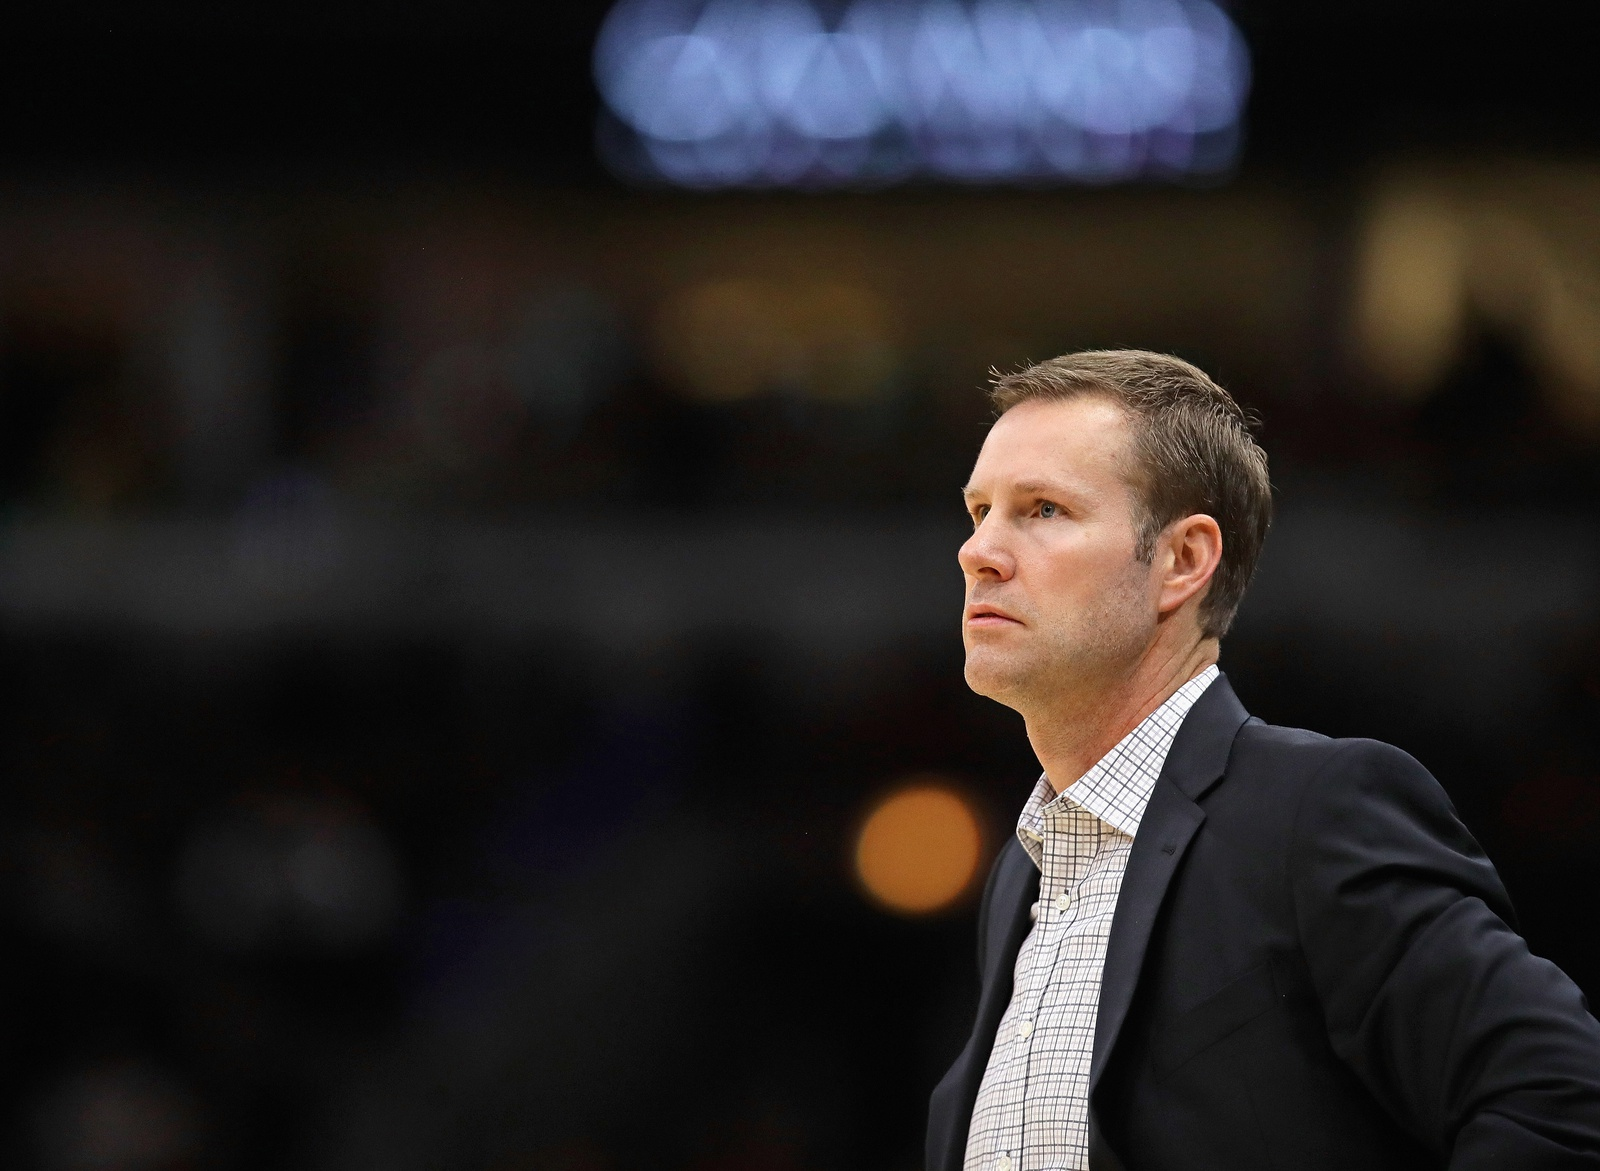 Head coach Fred Hoiberg of the Chicago Bulls watches as his team takes on the Toronto Raptors at United Center on November 17, 2018 in Chicago, Illinois.